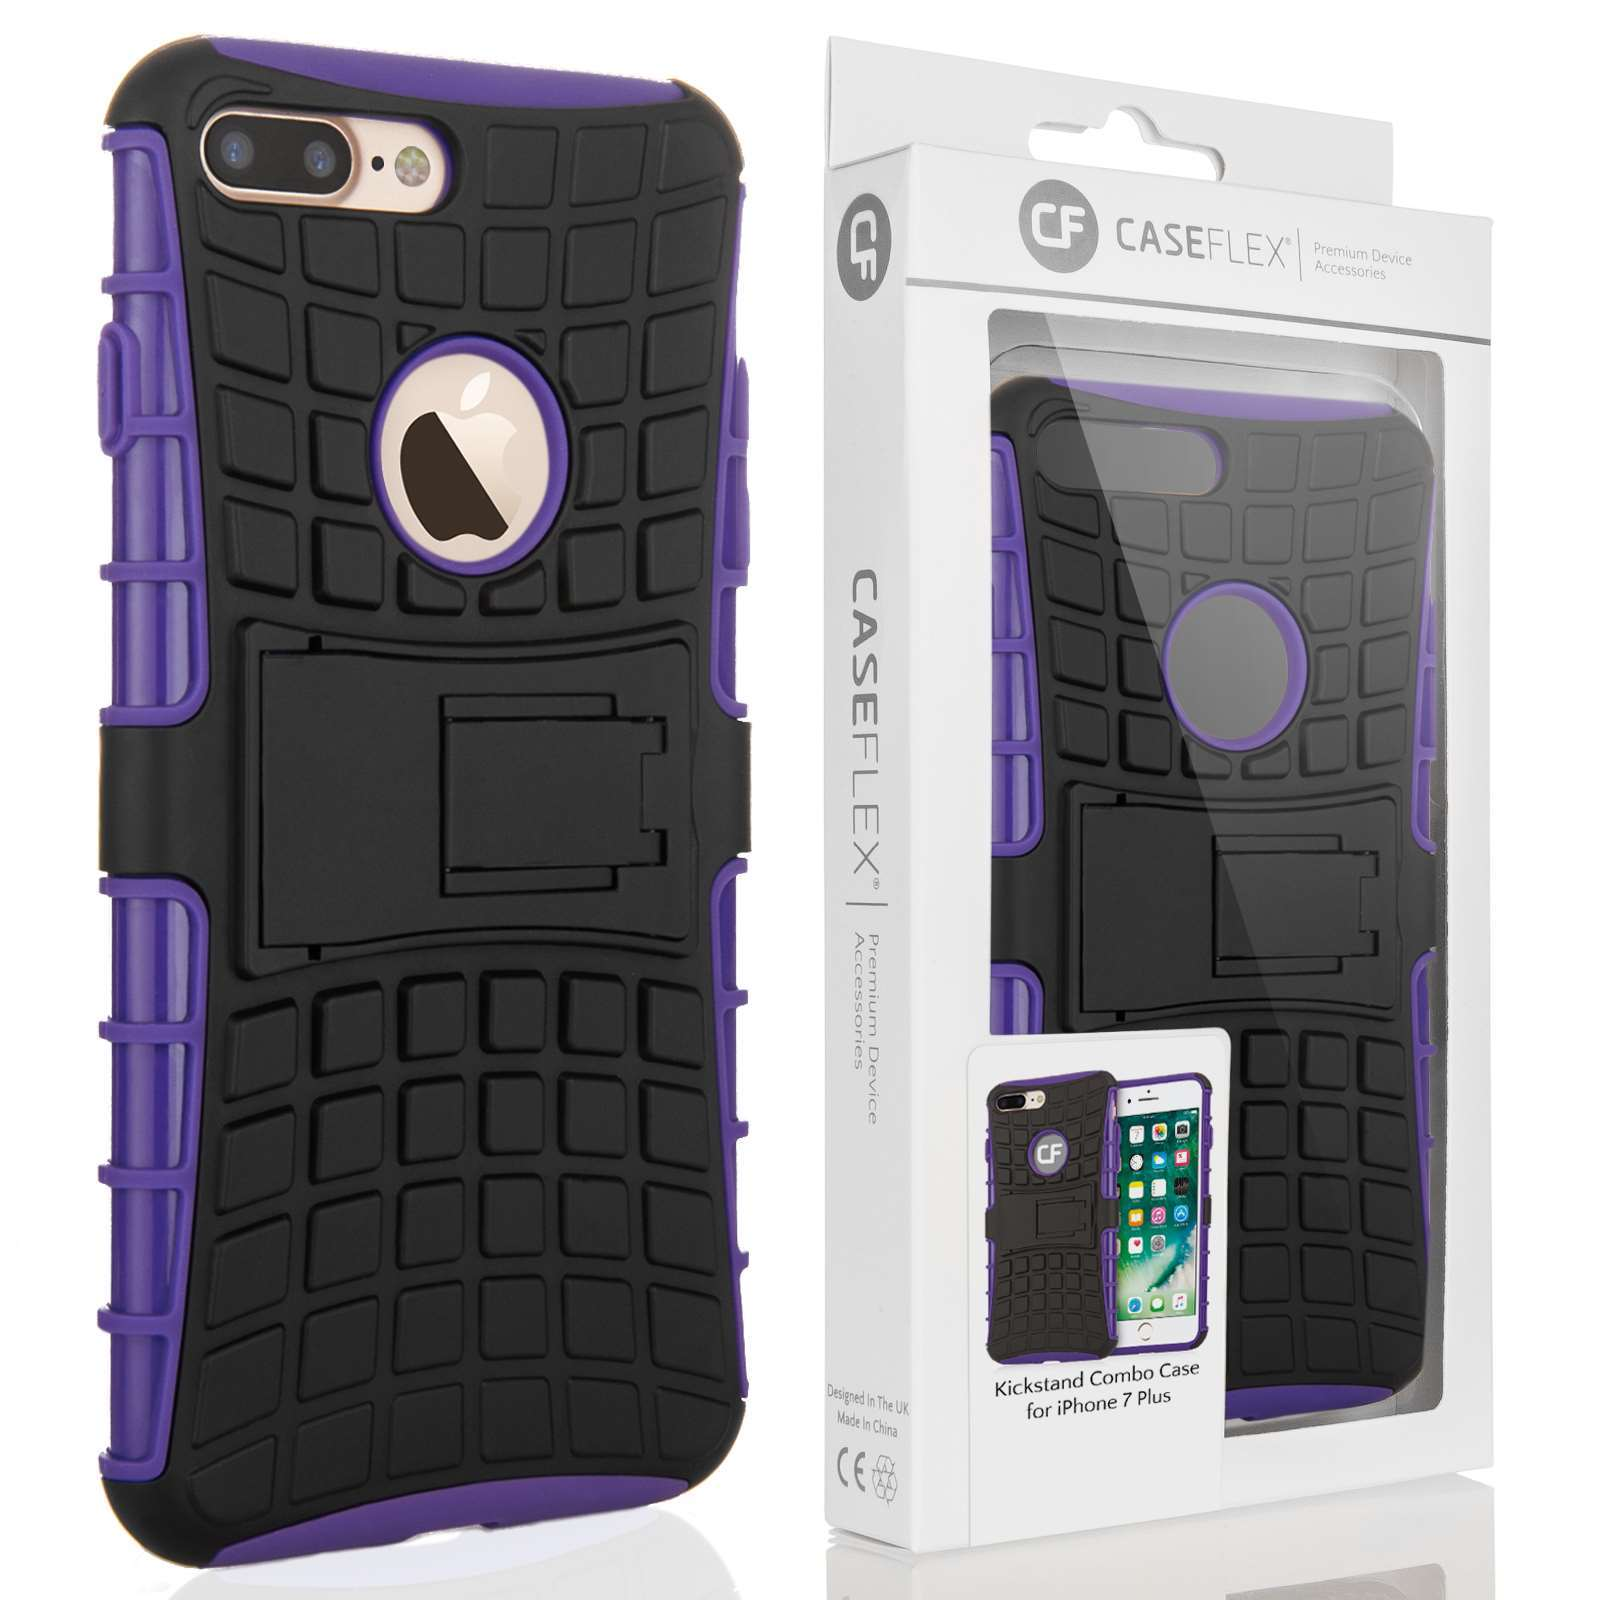 caseflex iphone 7 plus kickstand combo case purple retail box. Black Bedroom Furniture Sets. Home Design Ideas